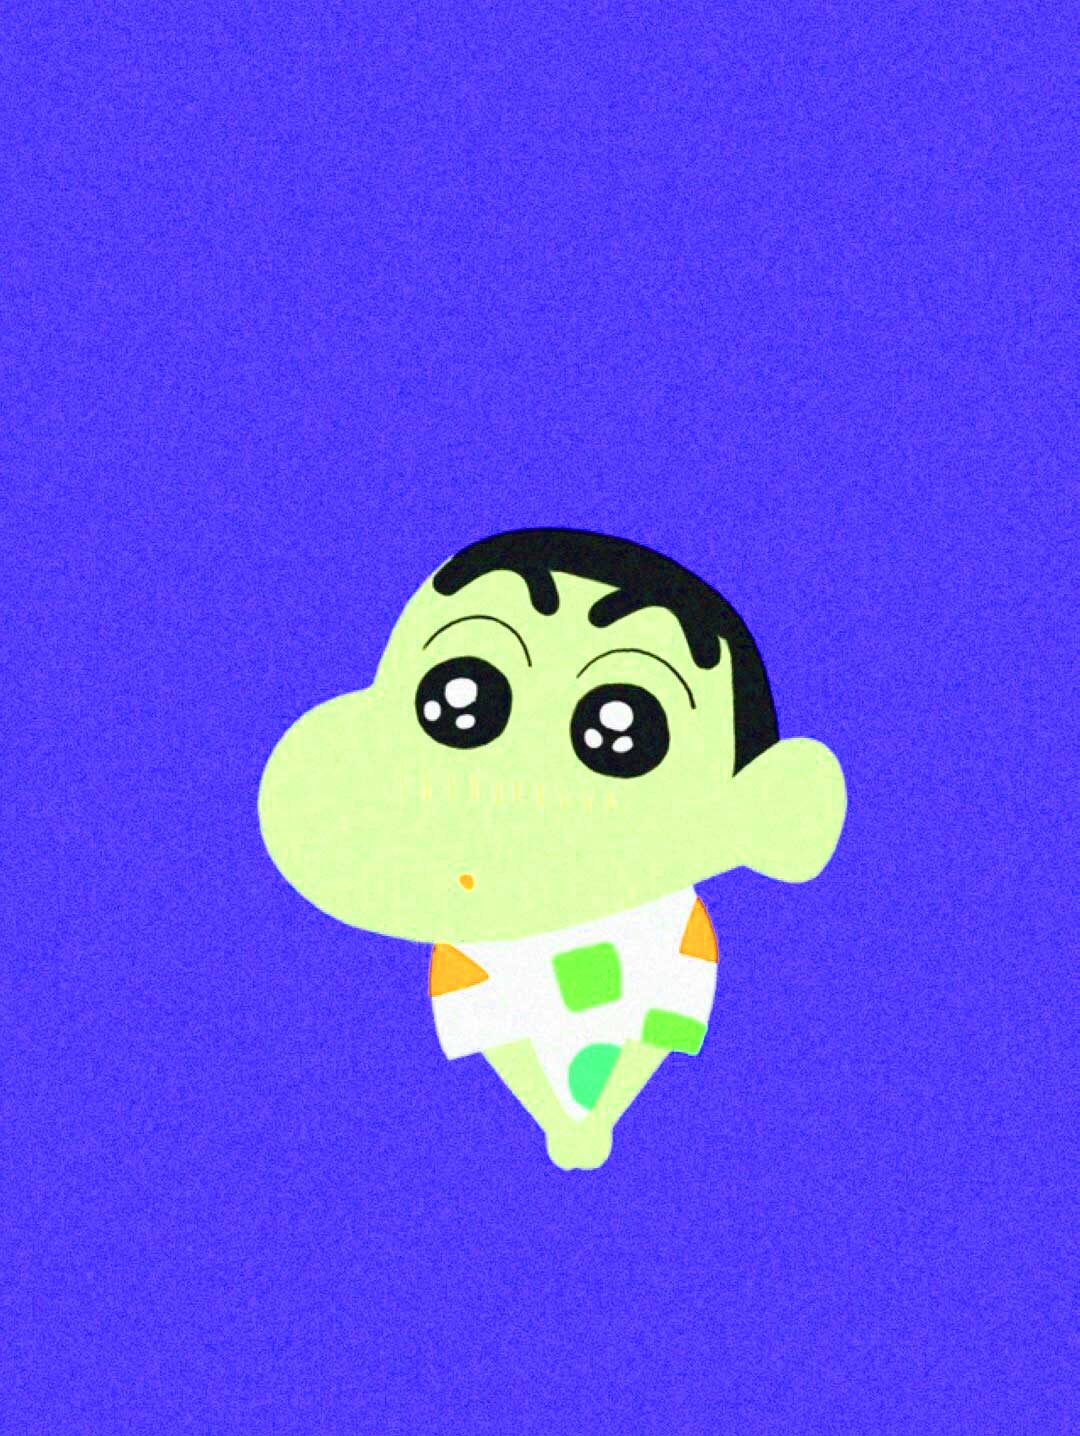 latest shinchan whatsapp dp Images pictures pics hd